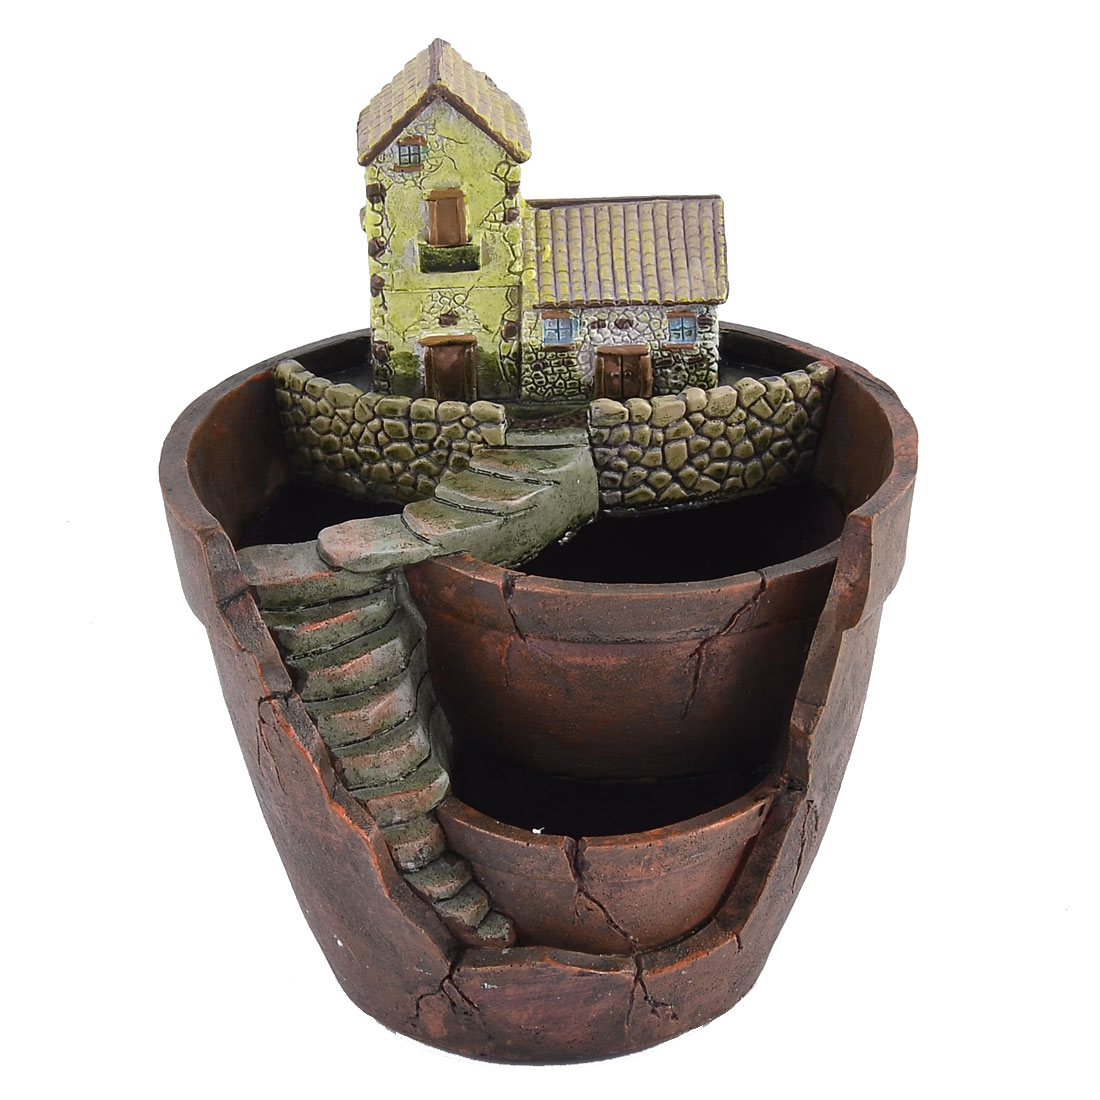 Home Garden Office Resin House Shaped Aloes Cactus Plant Flower Pot Brown Green